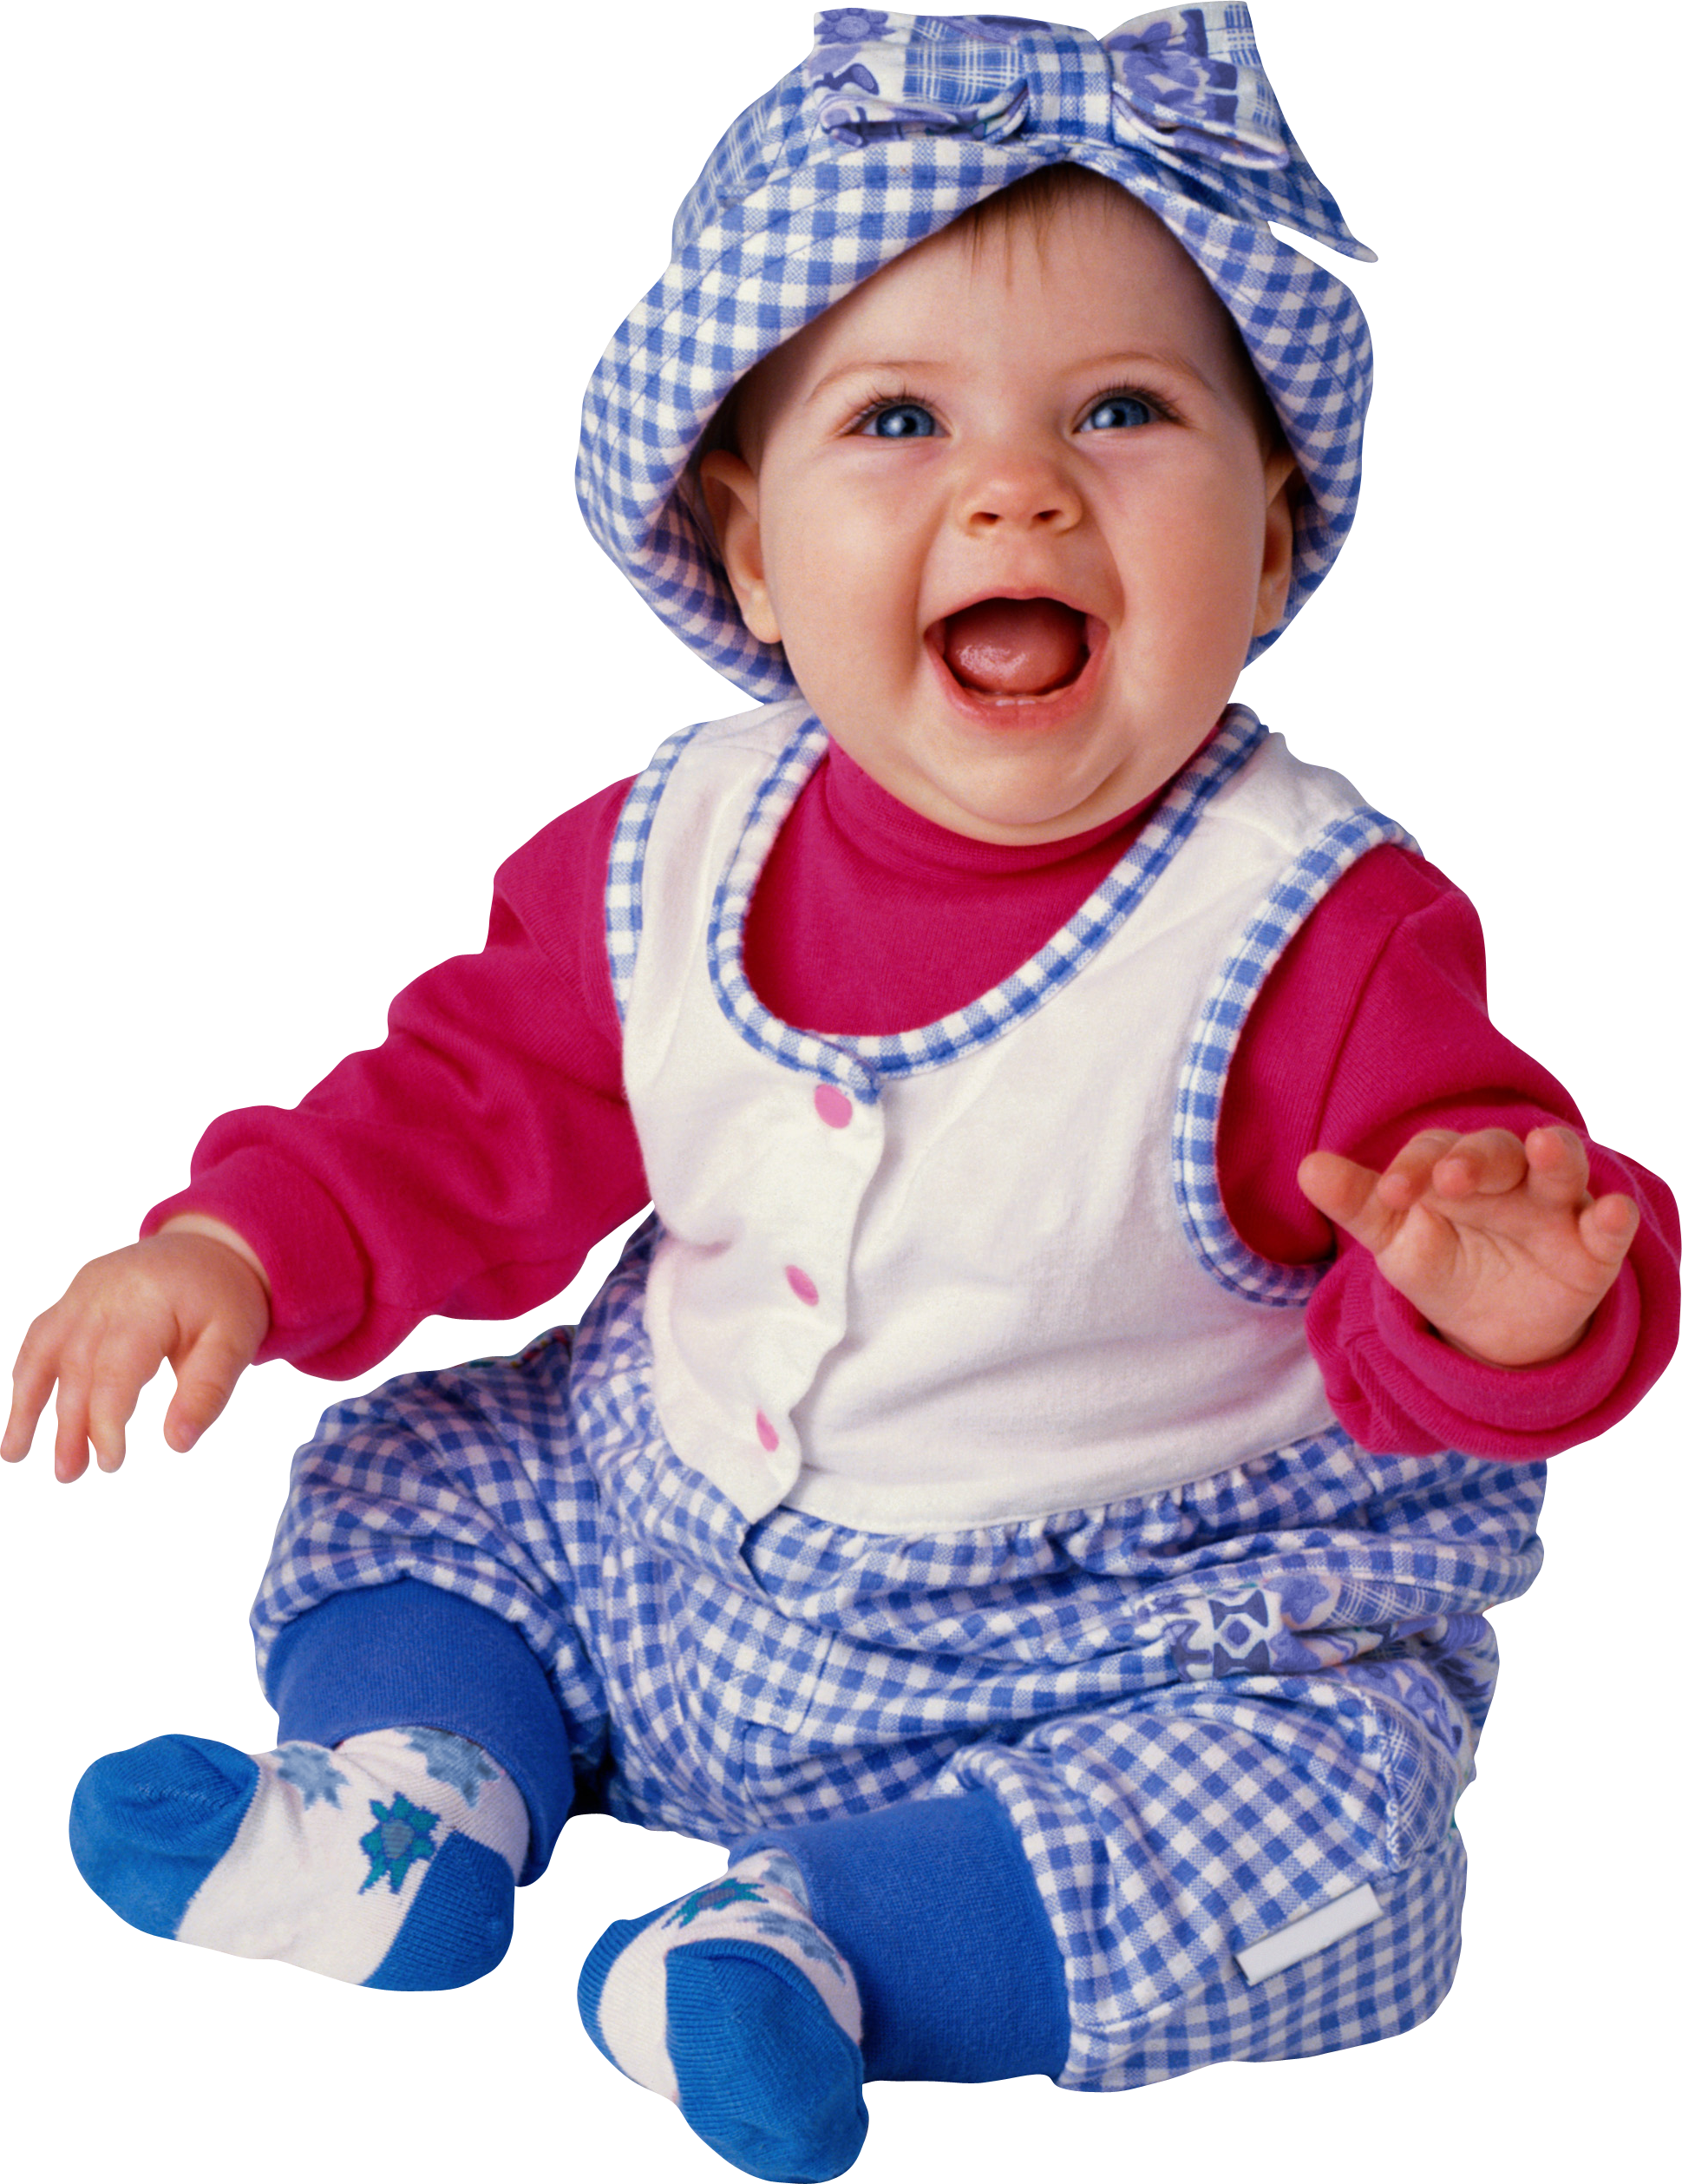 Cute Baby Png - Download Cute Baby PNG Image for Free